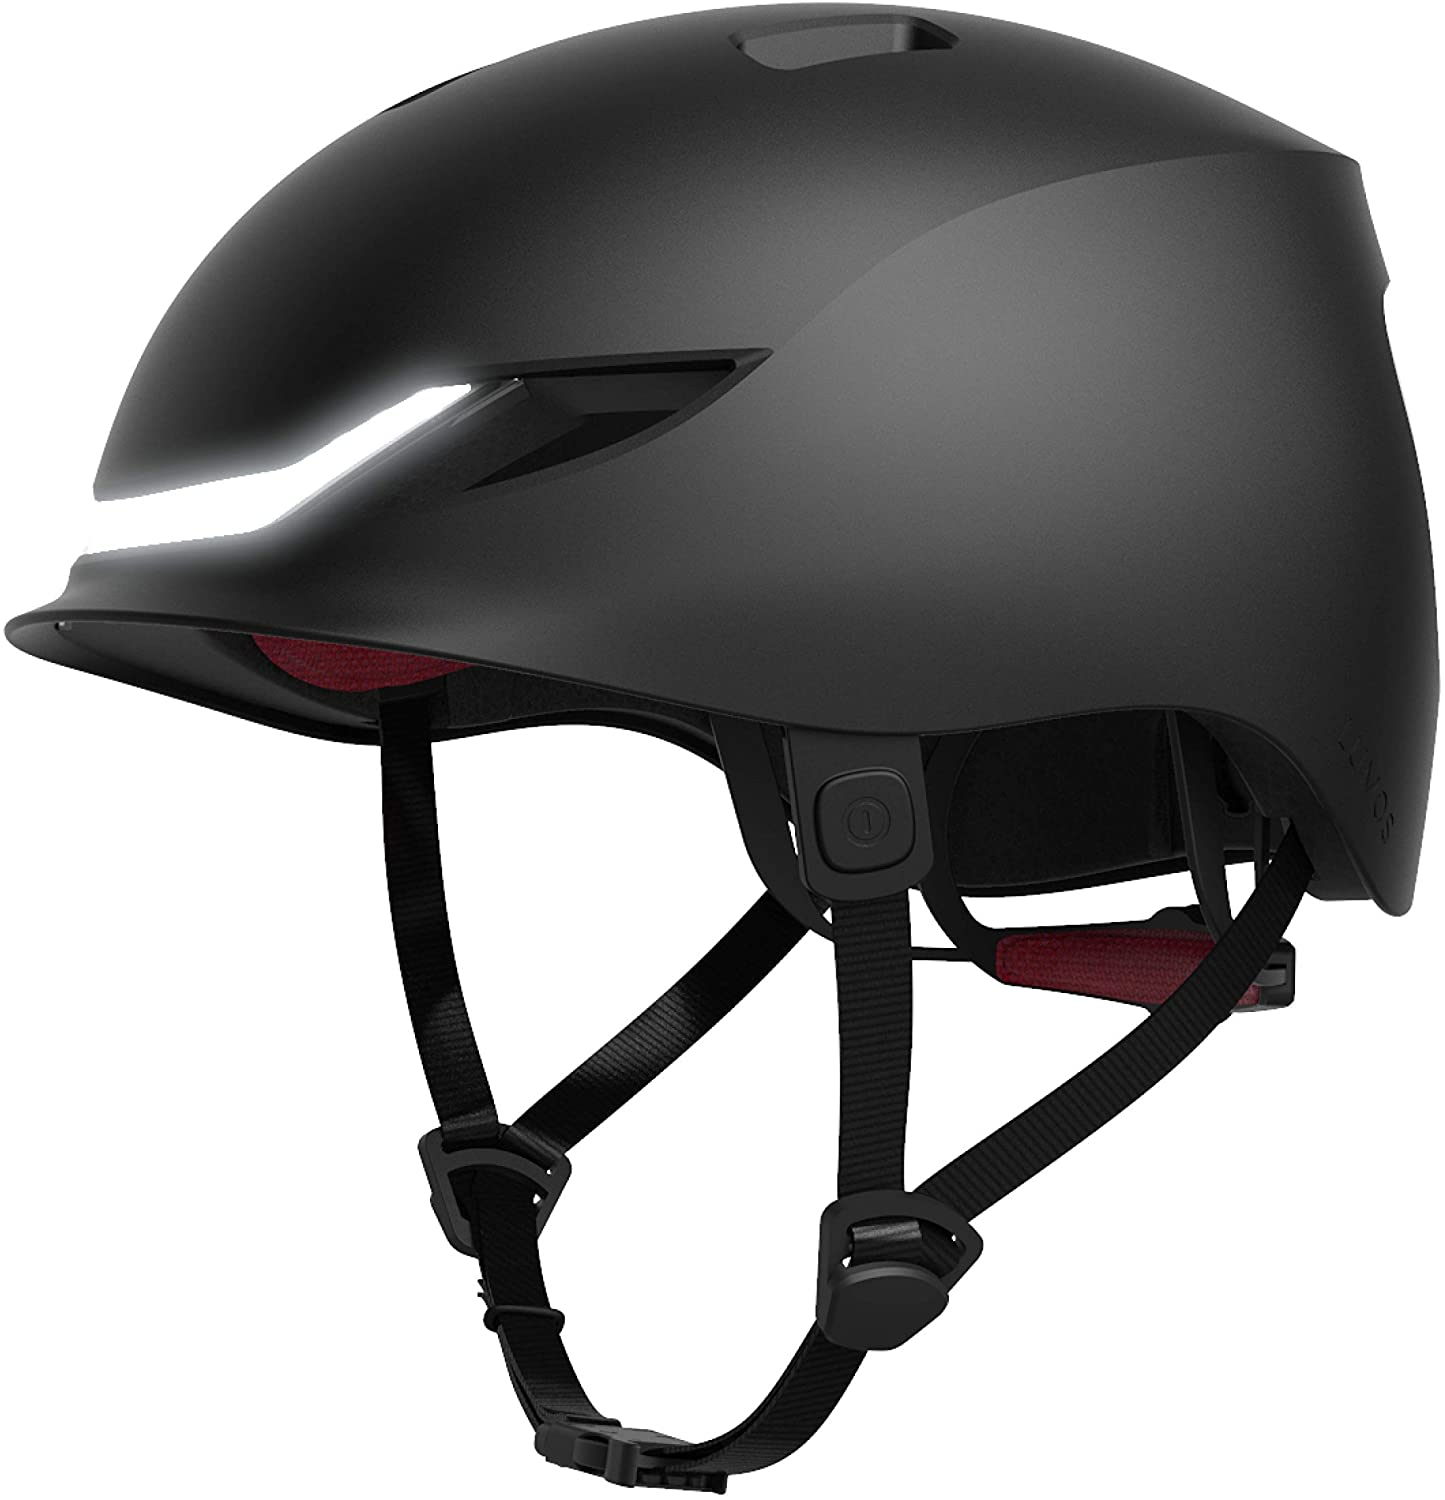 Lumos Matrix Smart Urban Bike Helmet